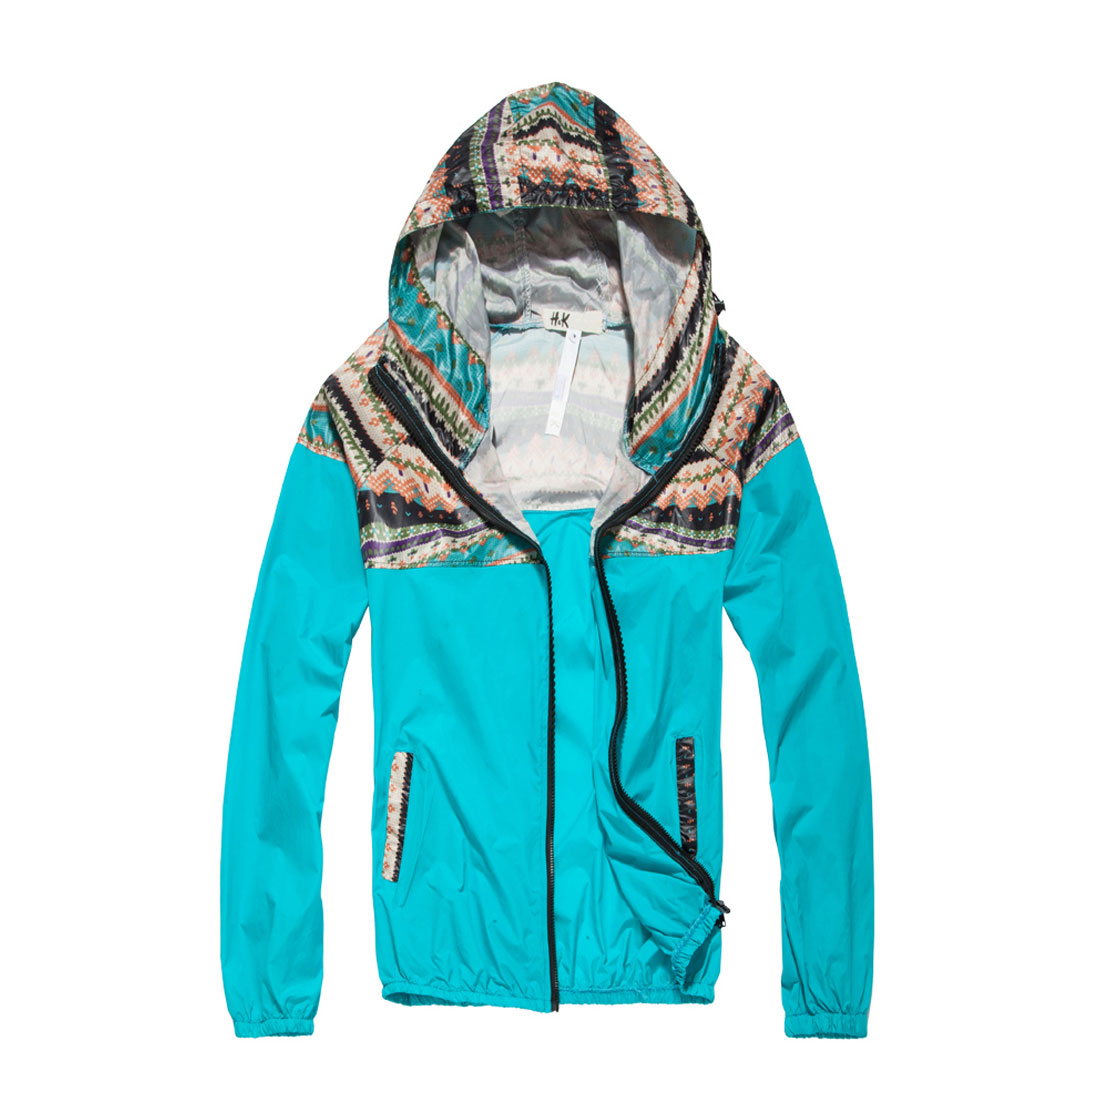 Men's Easy-wear Soft Novelty Printing w Pockets Blue Hooded Windbreaker M